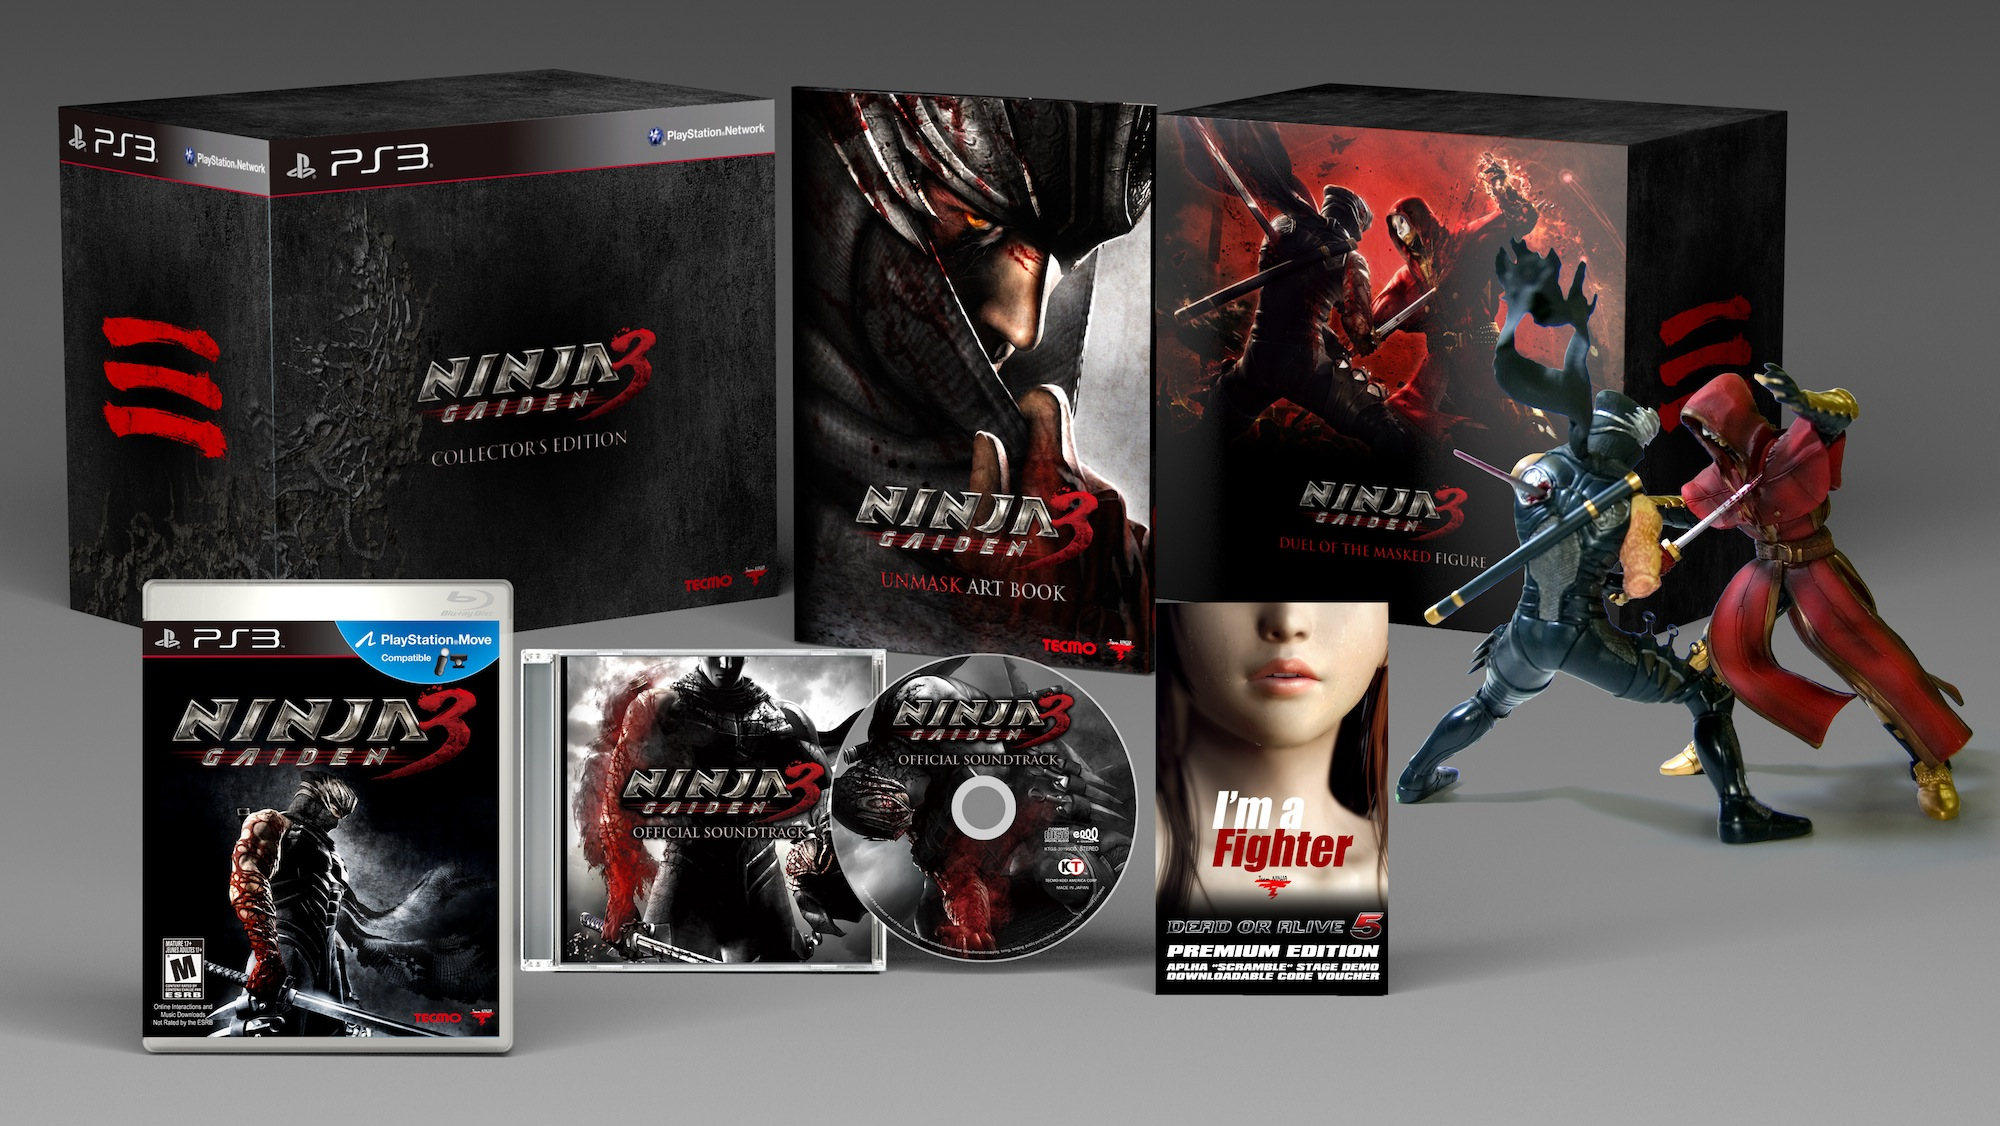 file_1946_ninja-gaiden-3-collectors-edition